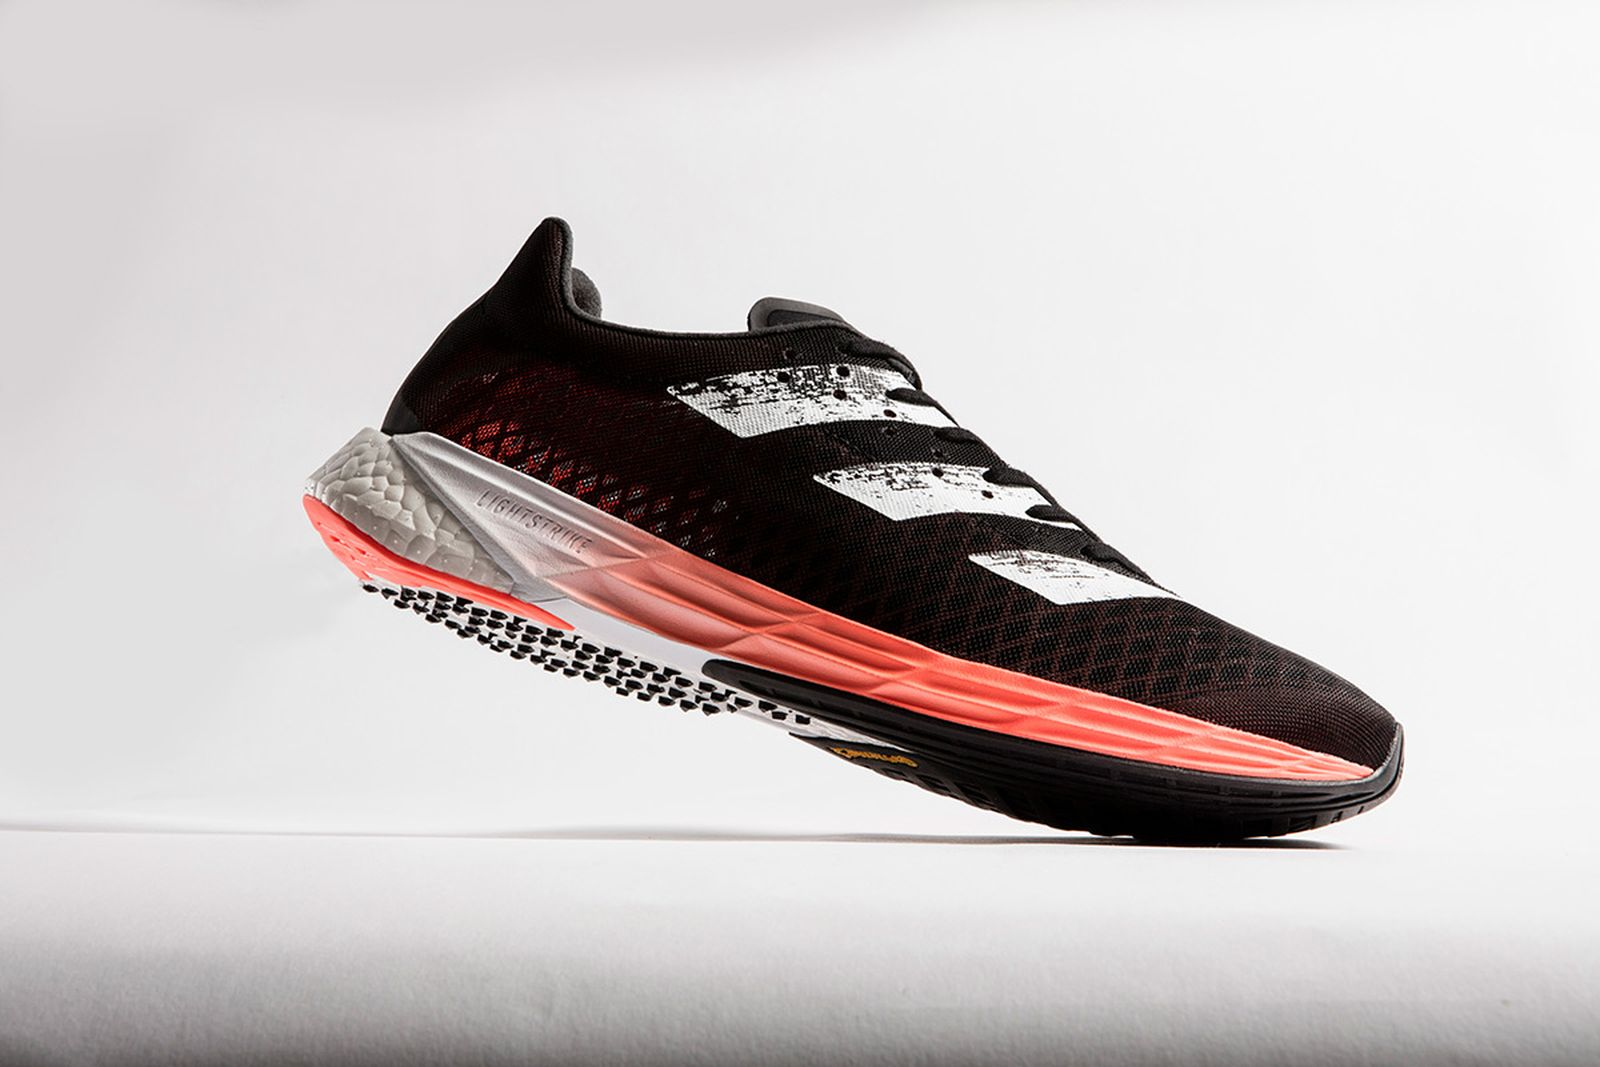 The Adidas Adizero Pro Is The Brand S Fastest Distance Shoe Ever